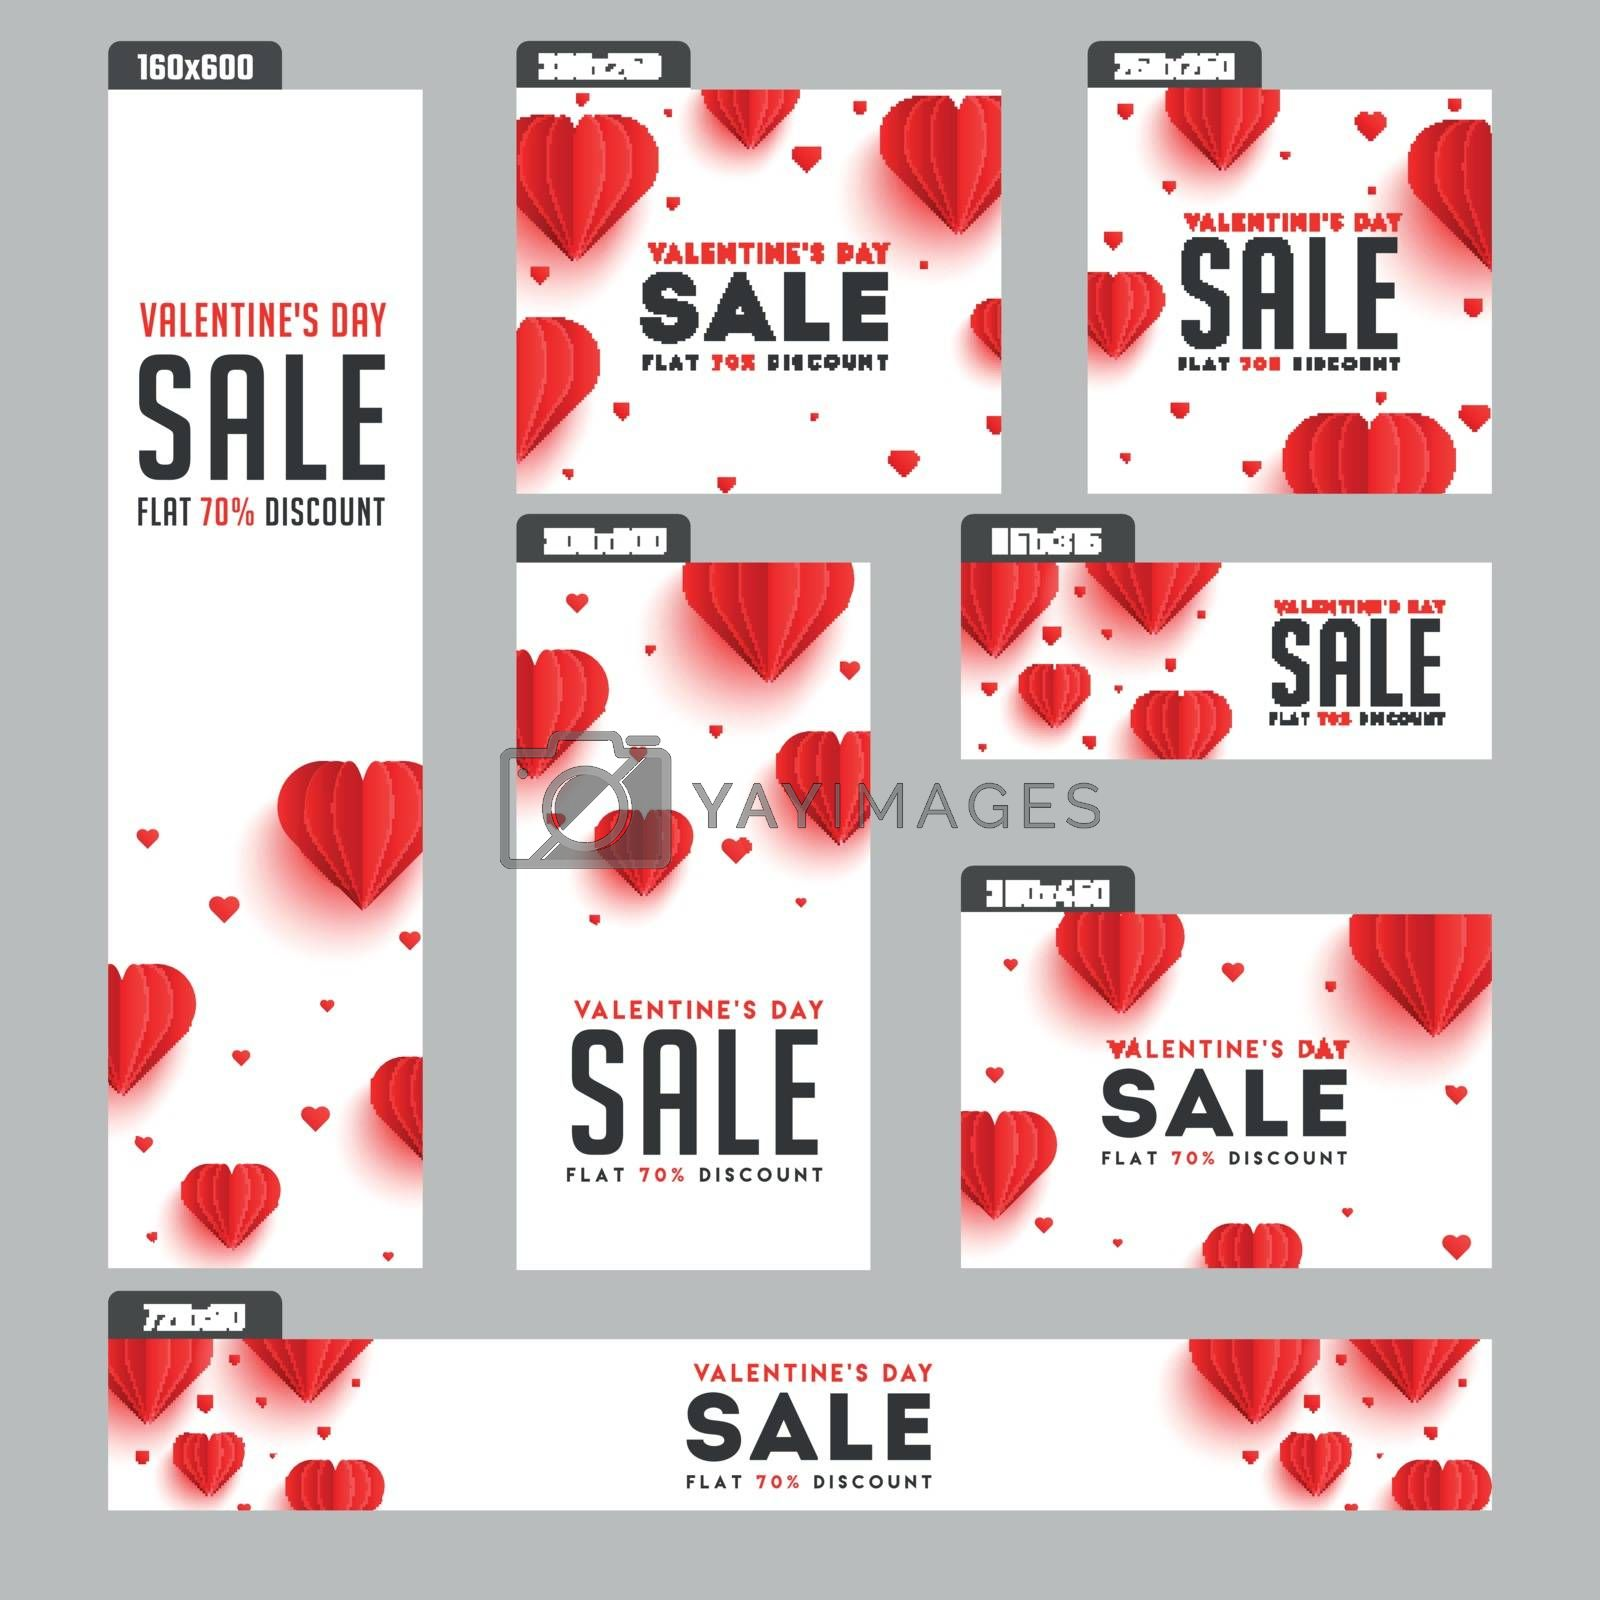 Valentine's Day sale header and banner set with 70% discount off by aispl